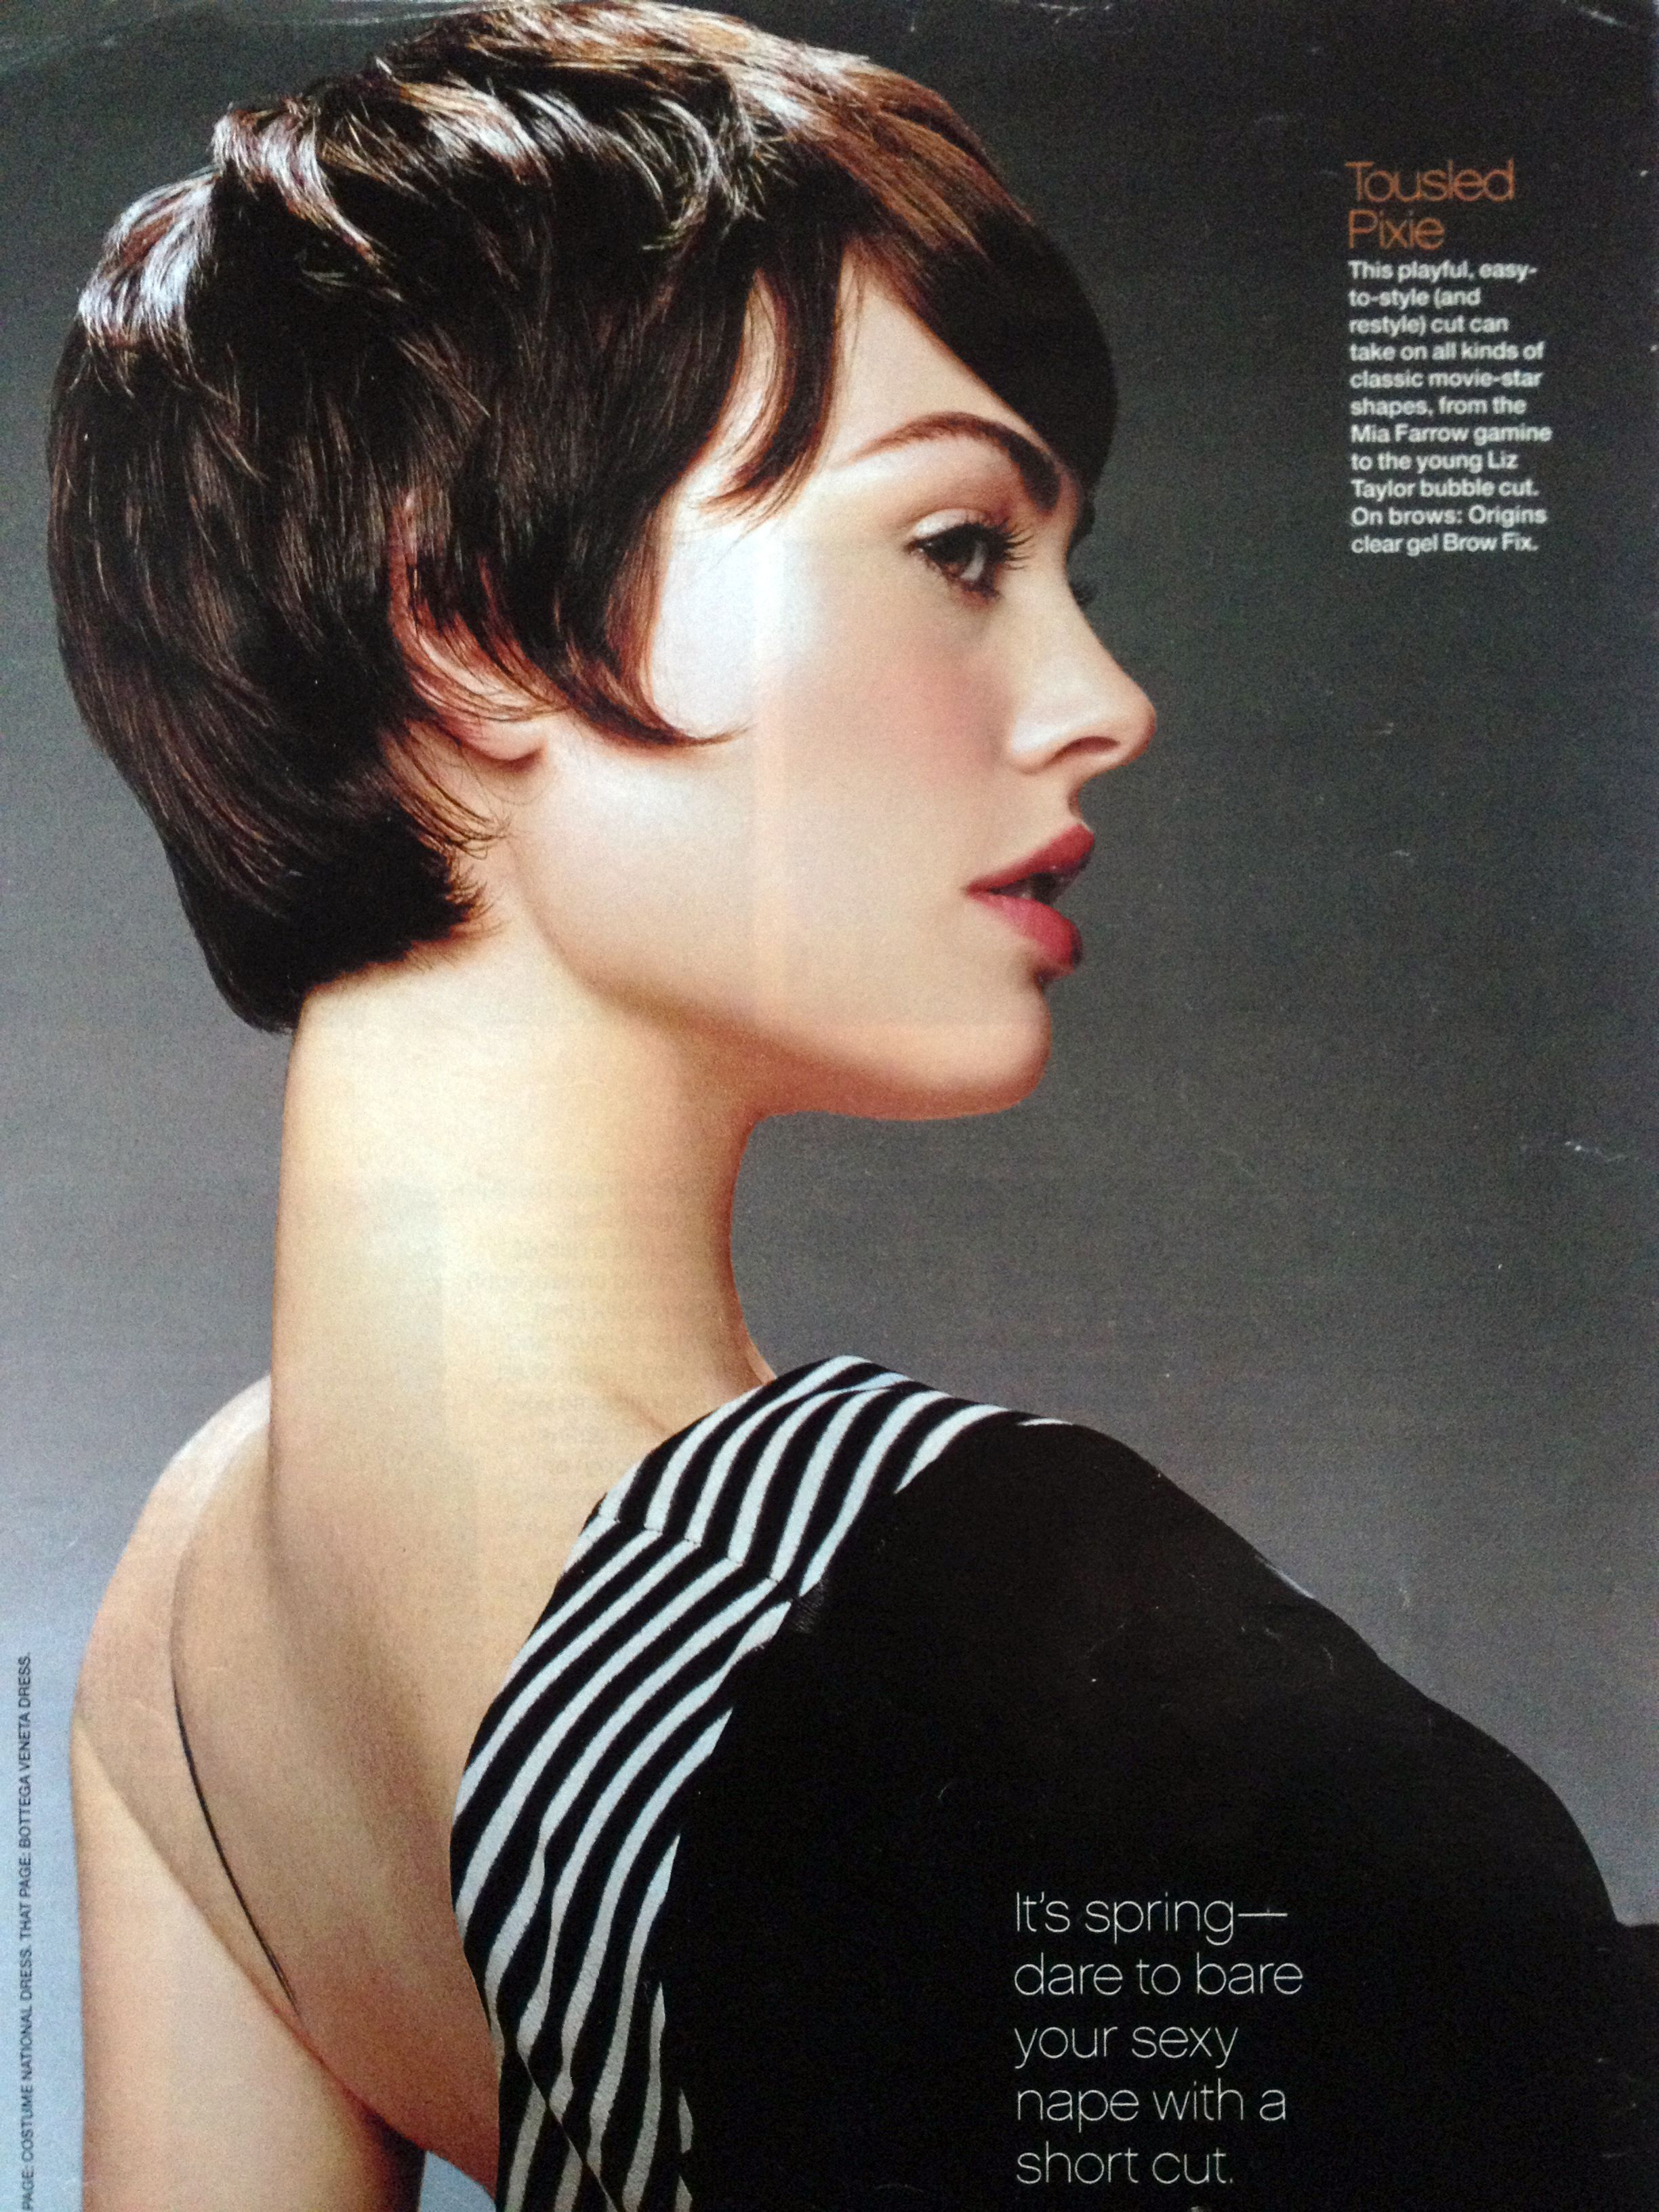 Pixie cut growing out hairumakeup pinterest pixie cut